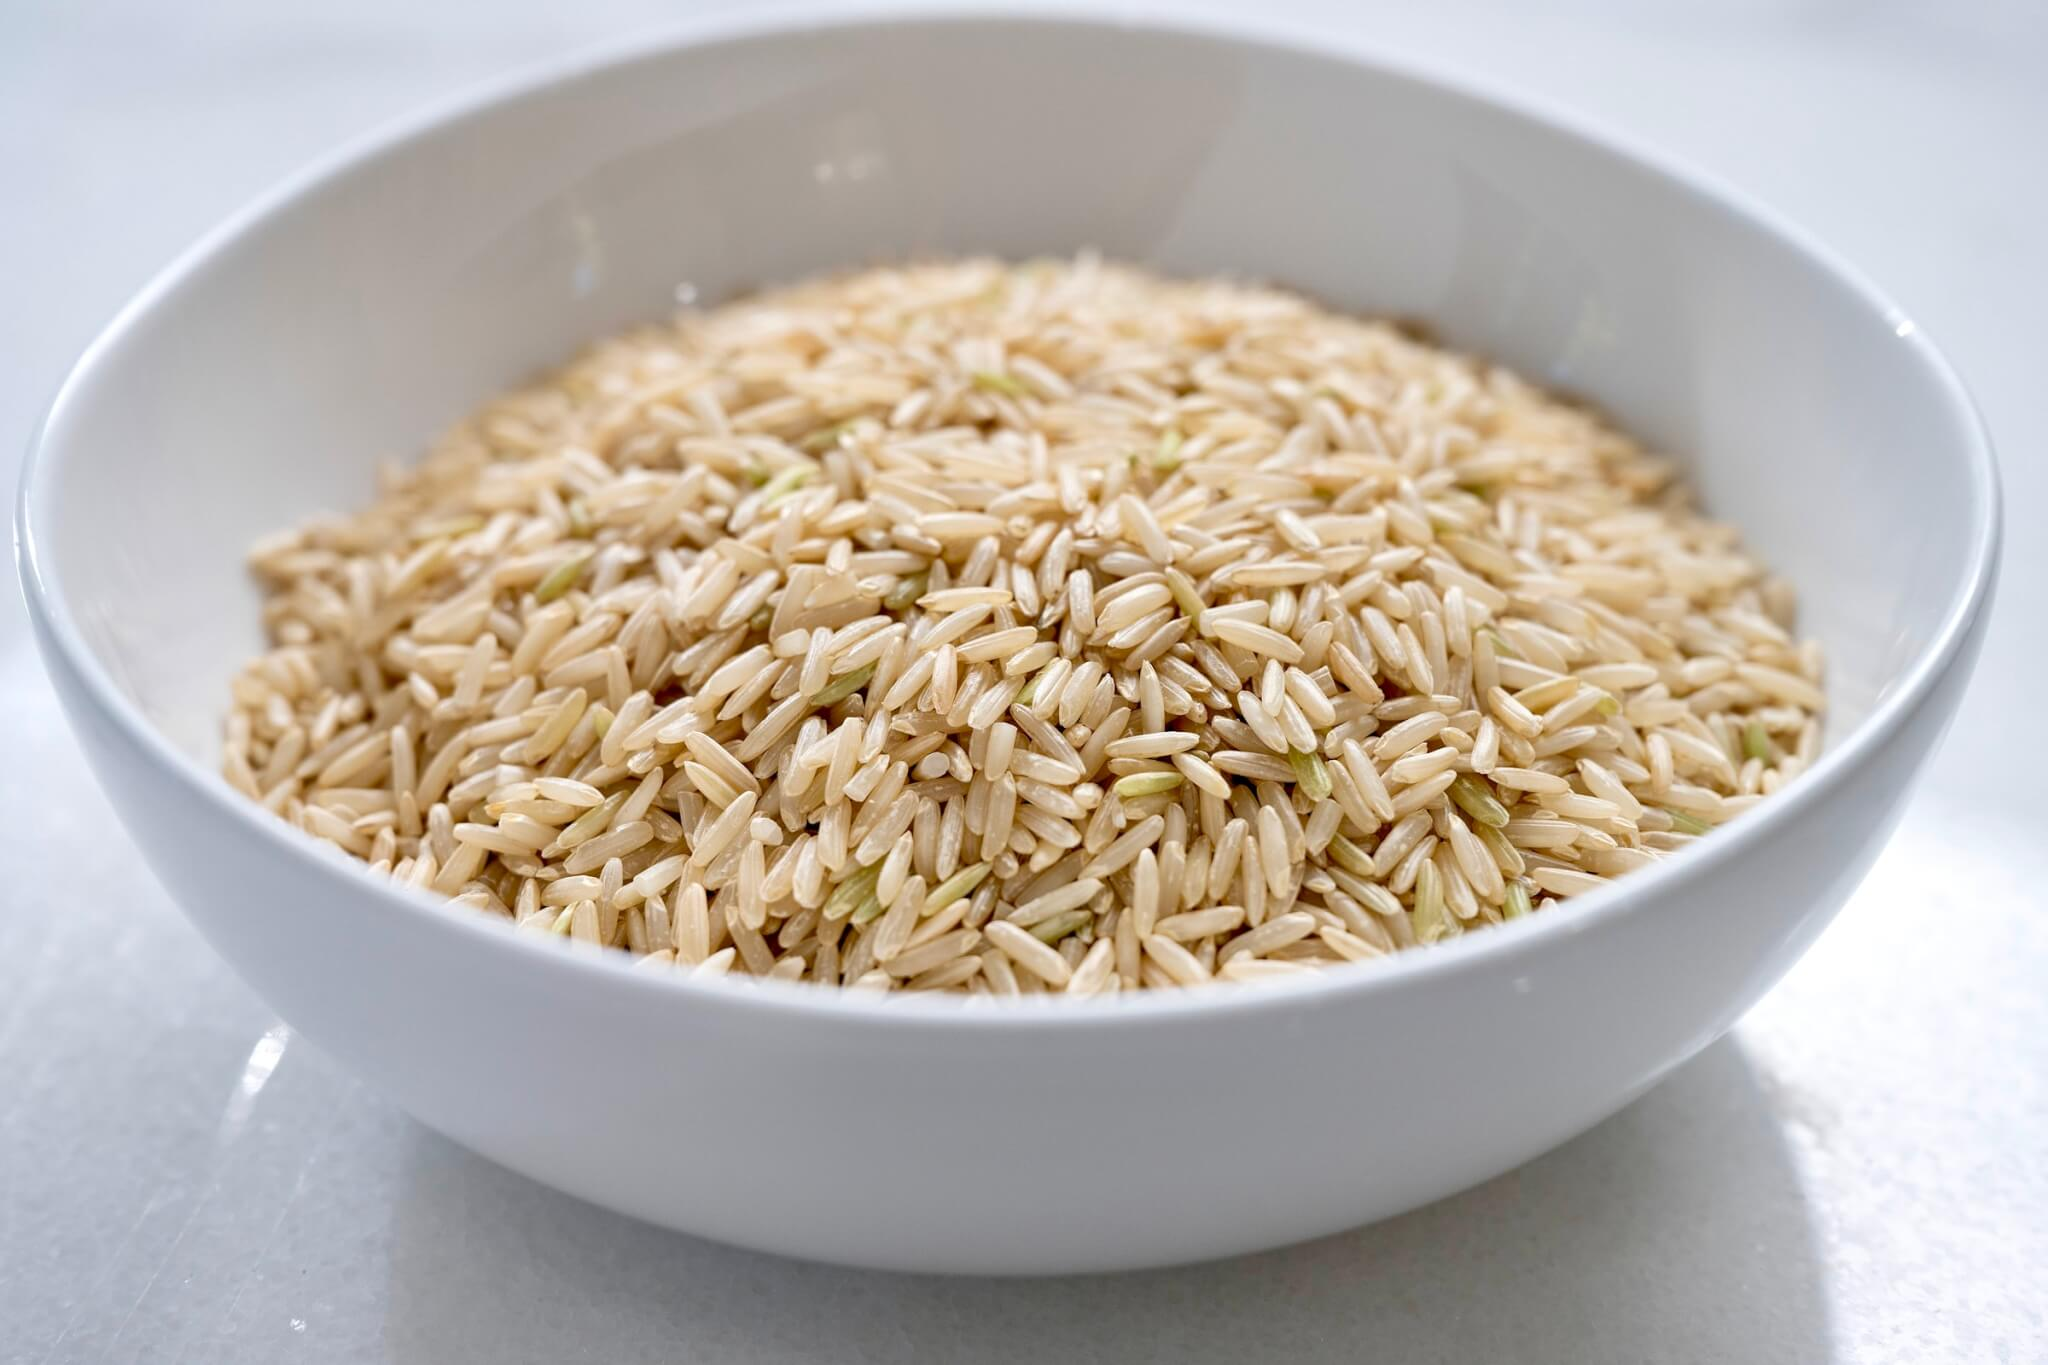 To steam, boil, bake, or use a rice cooker? What's the best way to cook brown rice? This foolproof boiling method produces light, fluffy, plump grains every single time. It's easy, too!